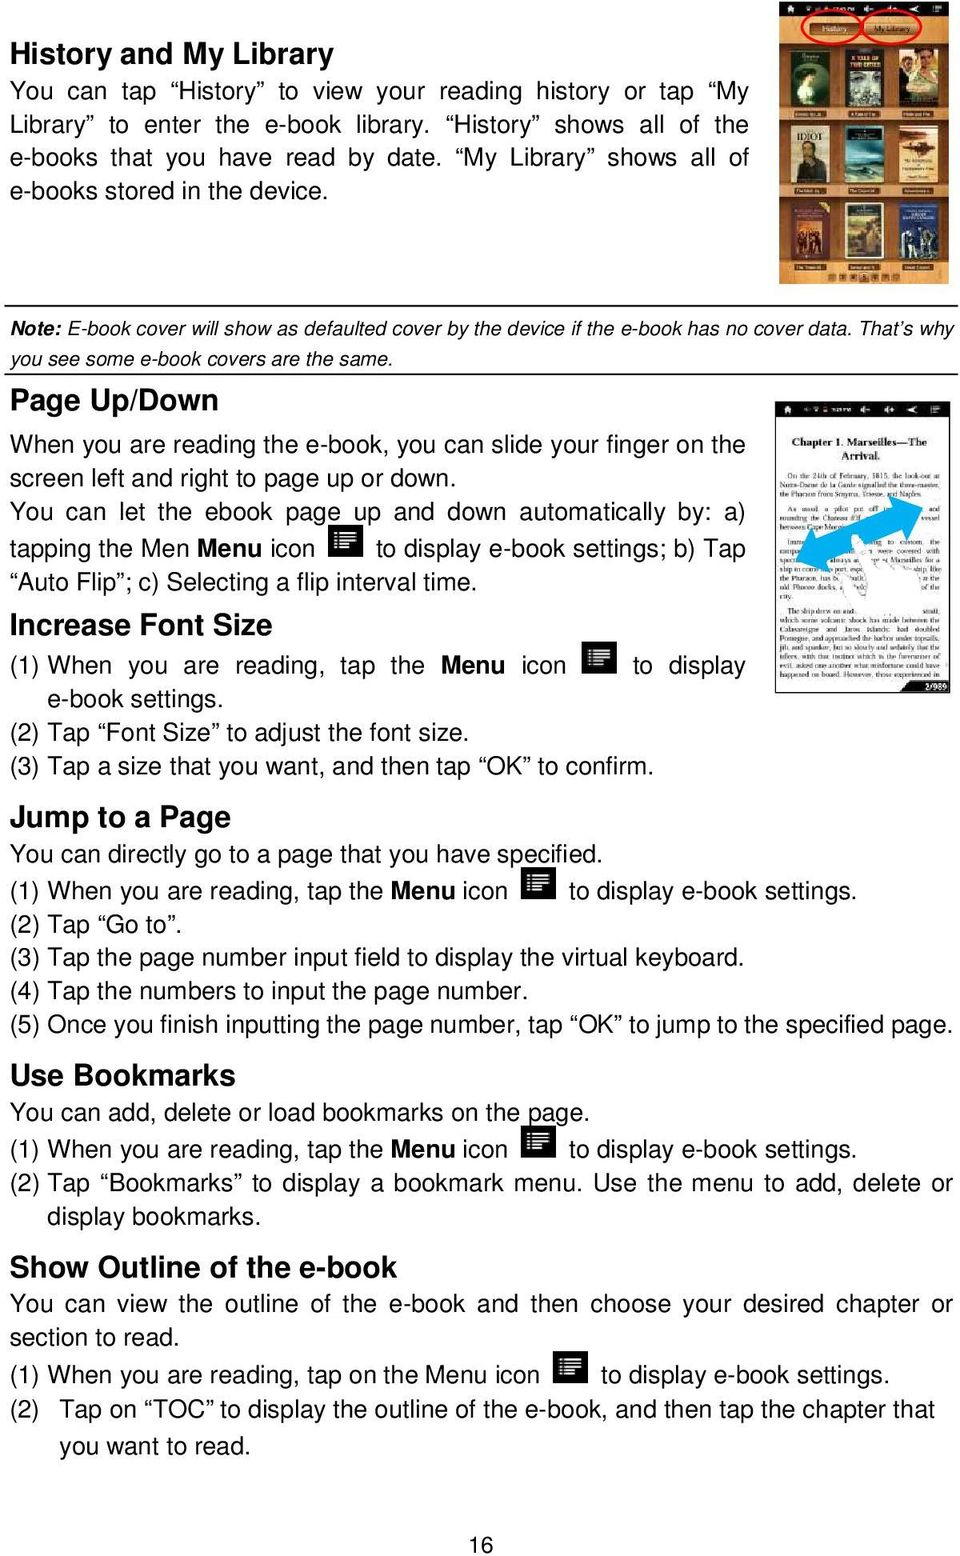 Page Up/Down When you are reading the e-book, you can slide your finger on the screen left and right to page up or down.